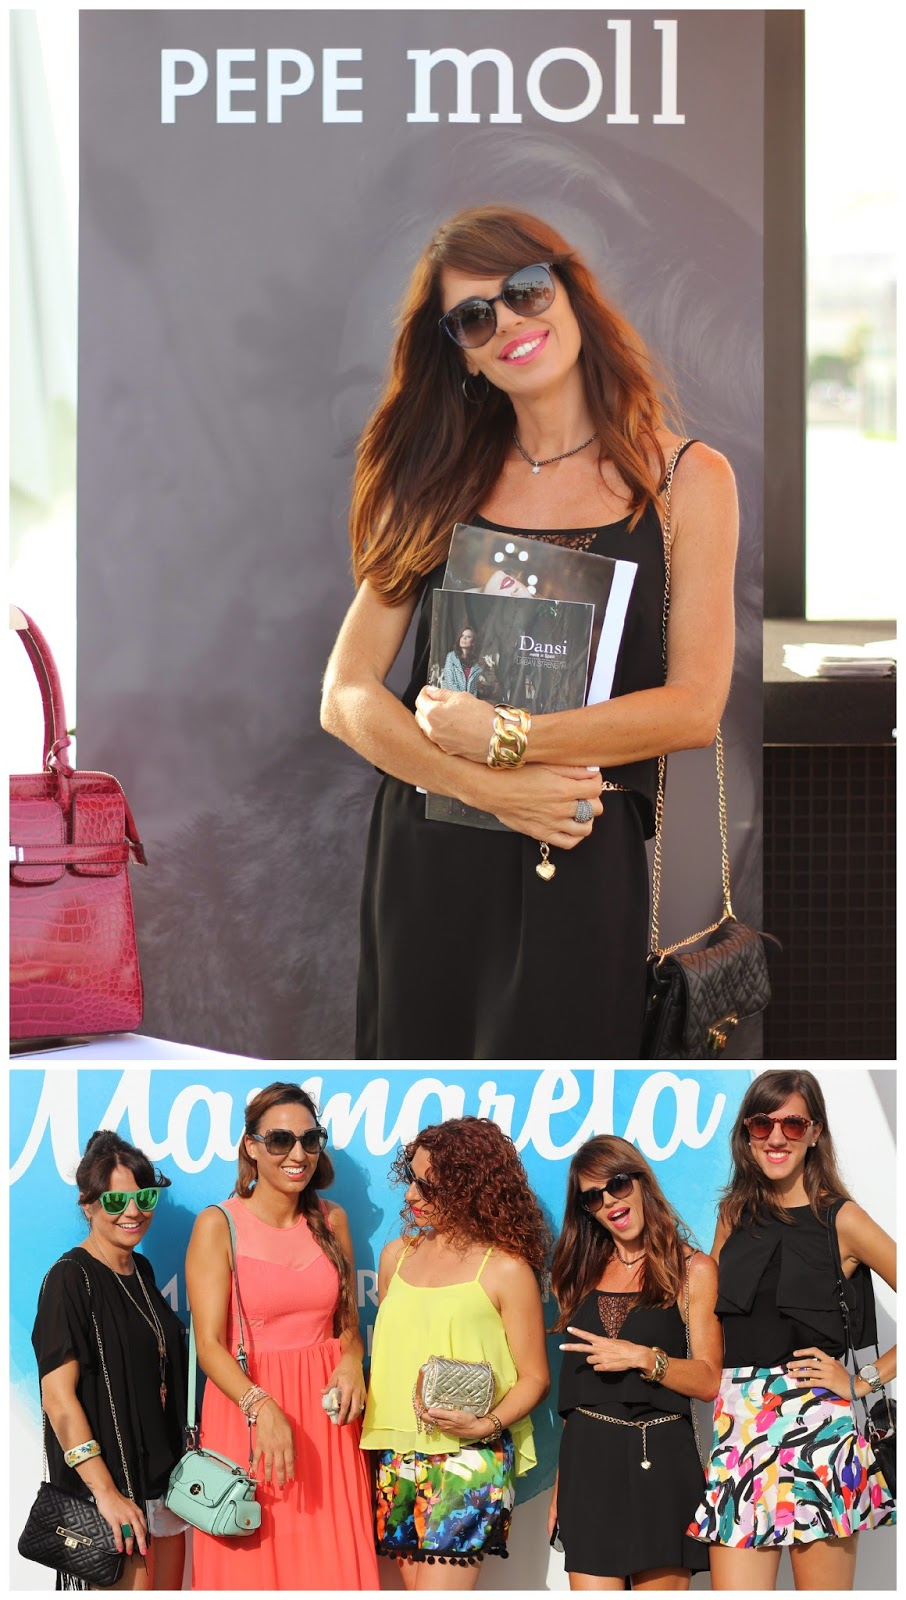 Pepe Moll and Dansi Shoes - Evento Blogger - ALCBloggersDay